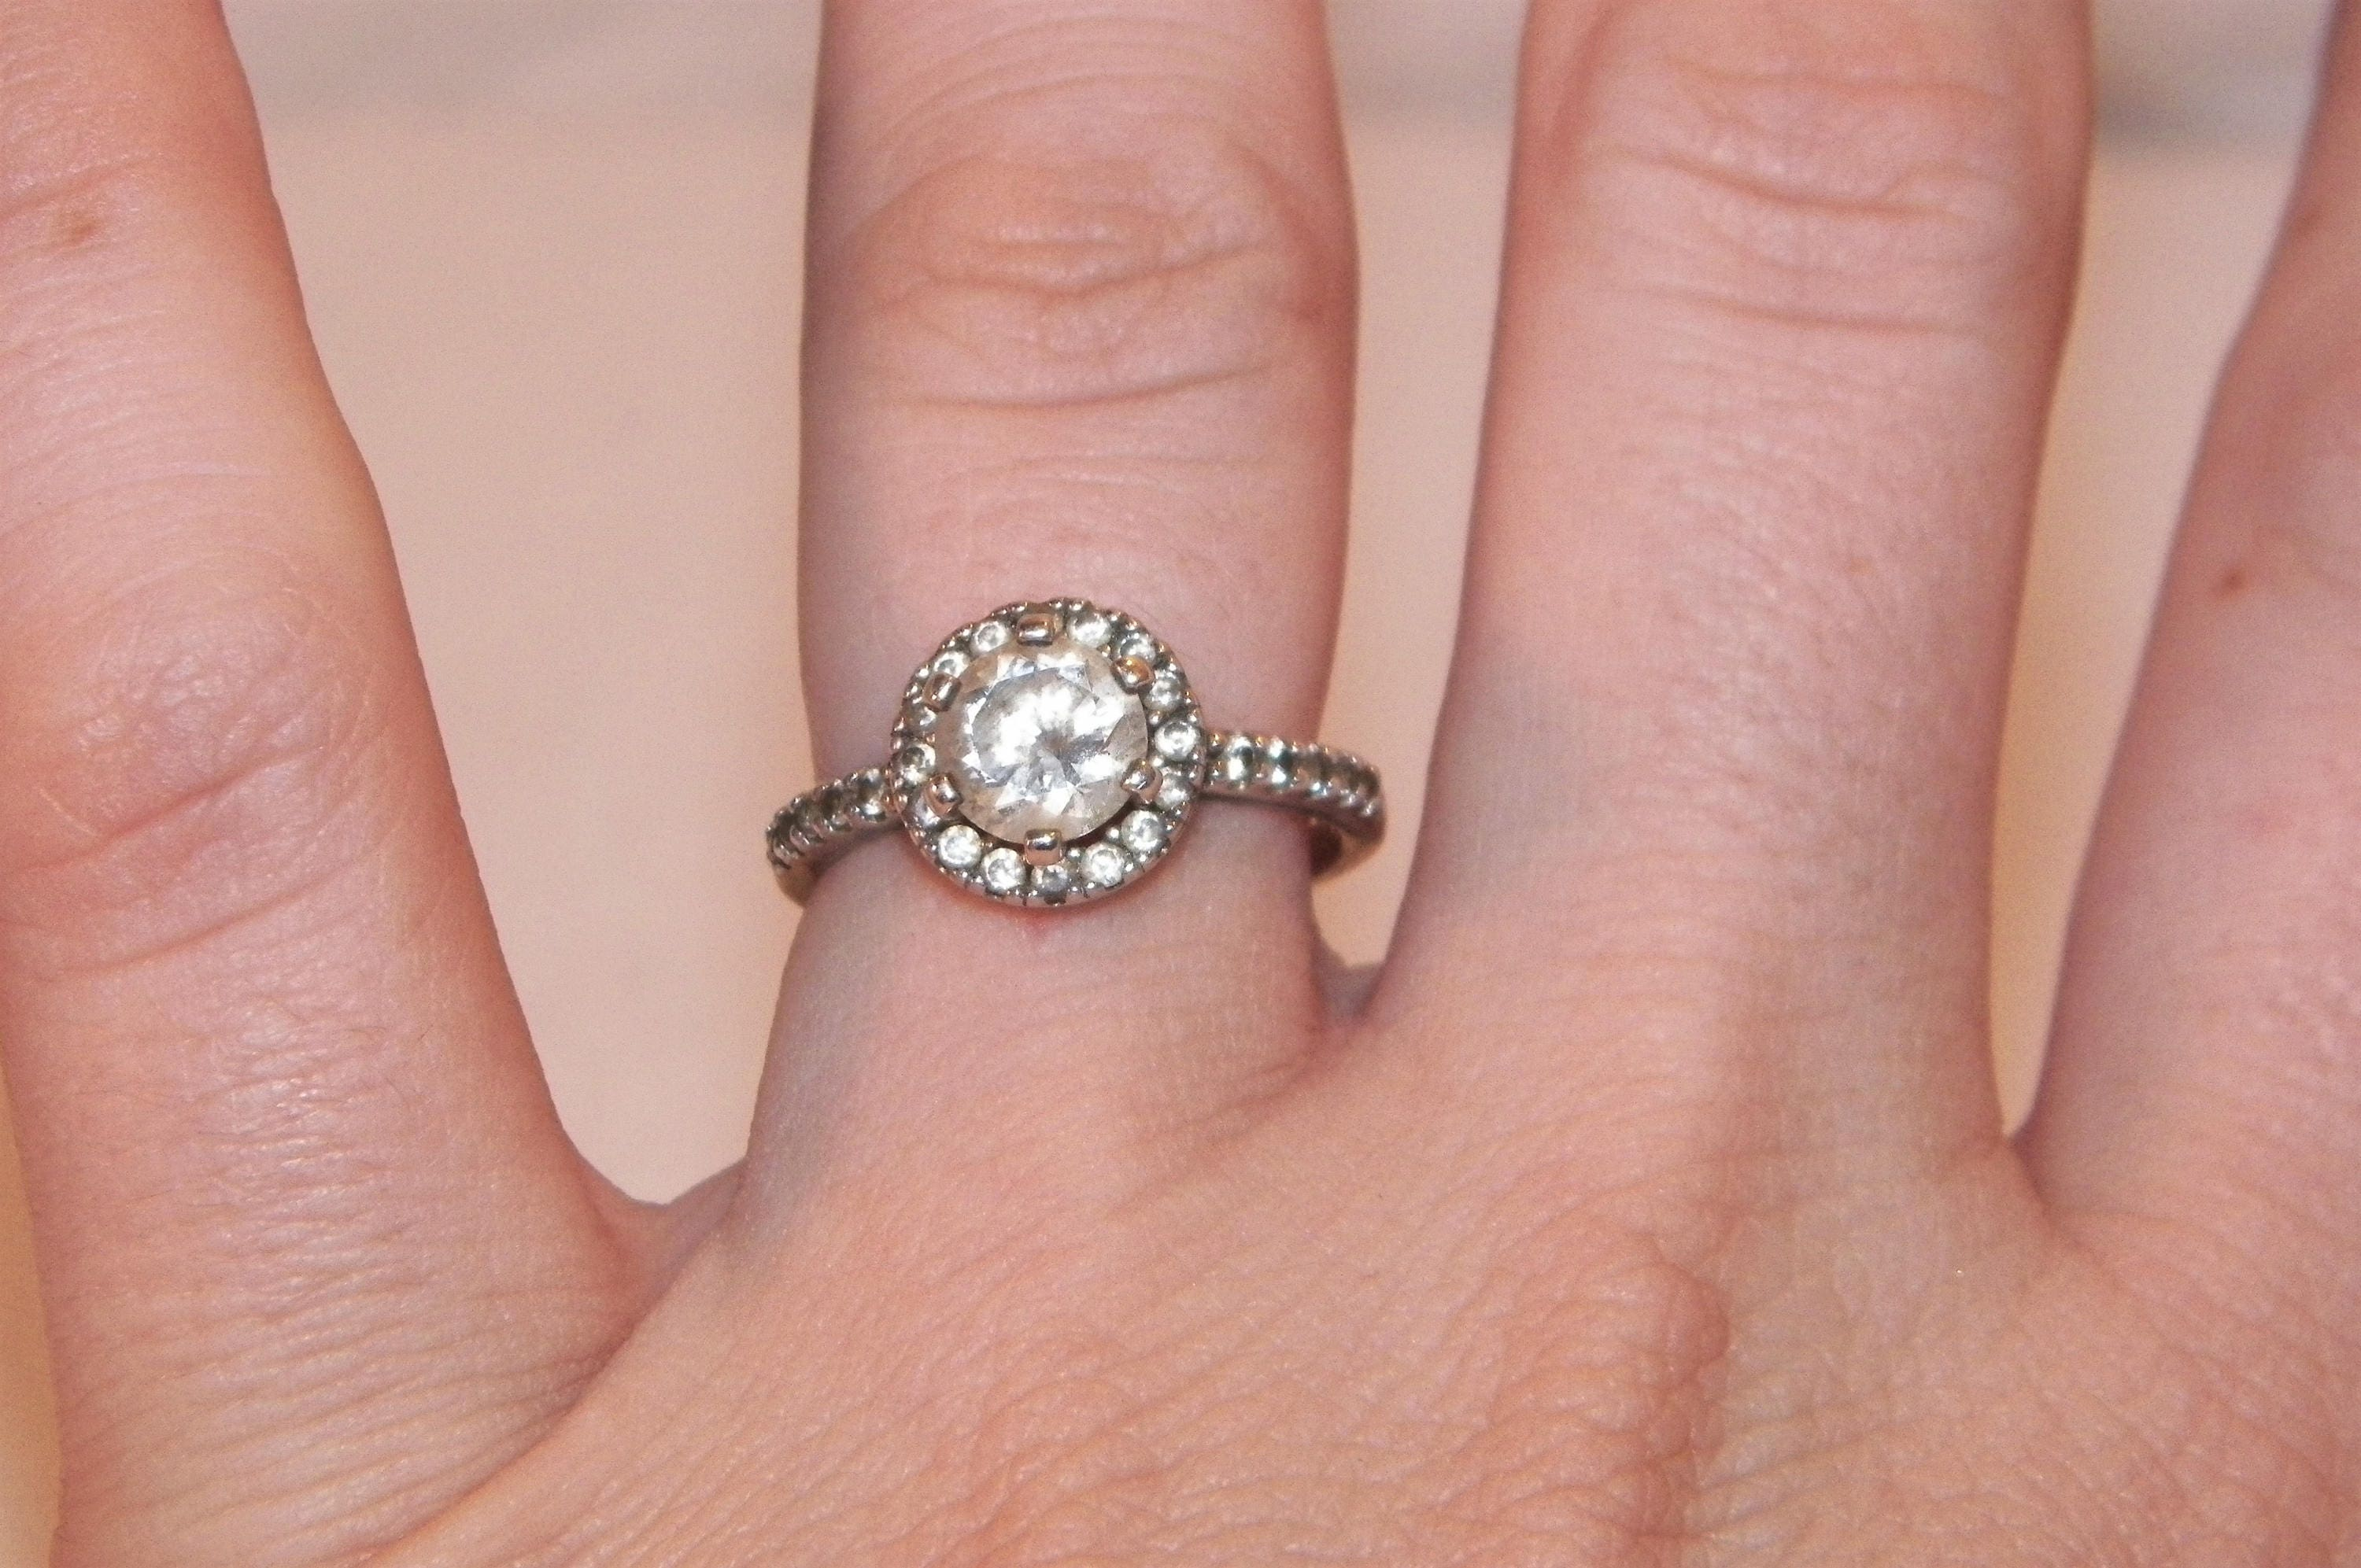 Sterling Silver size 7 1/4 wedding ring engagement ring